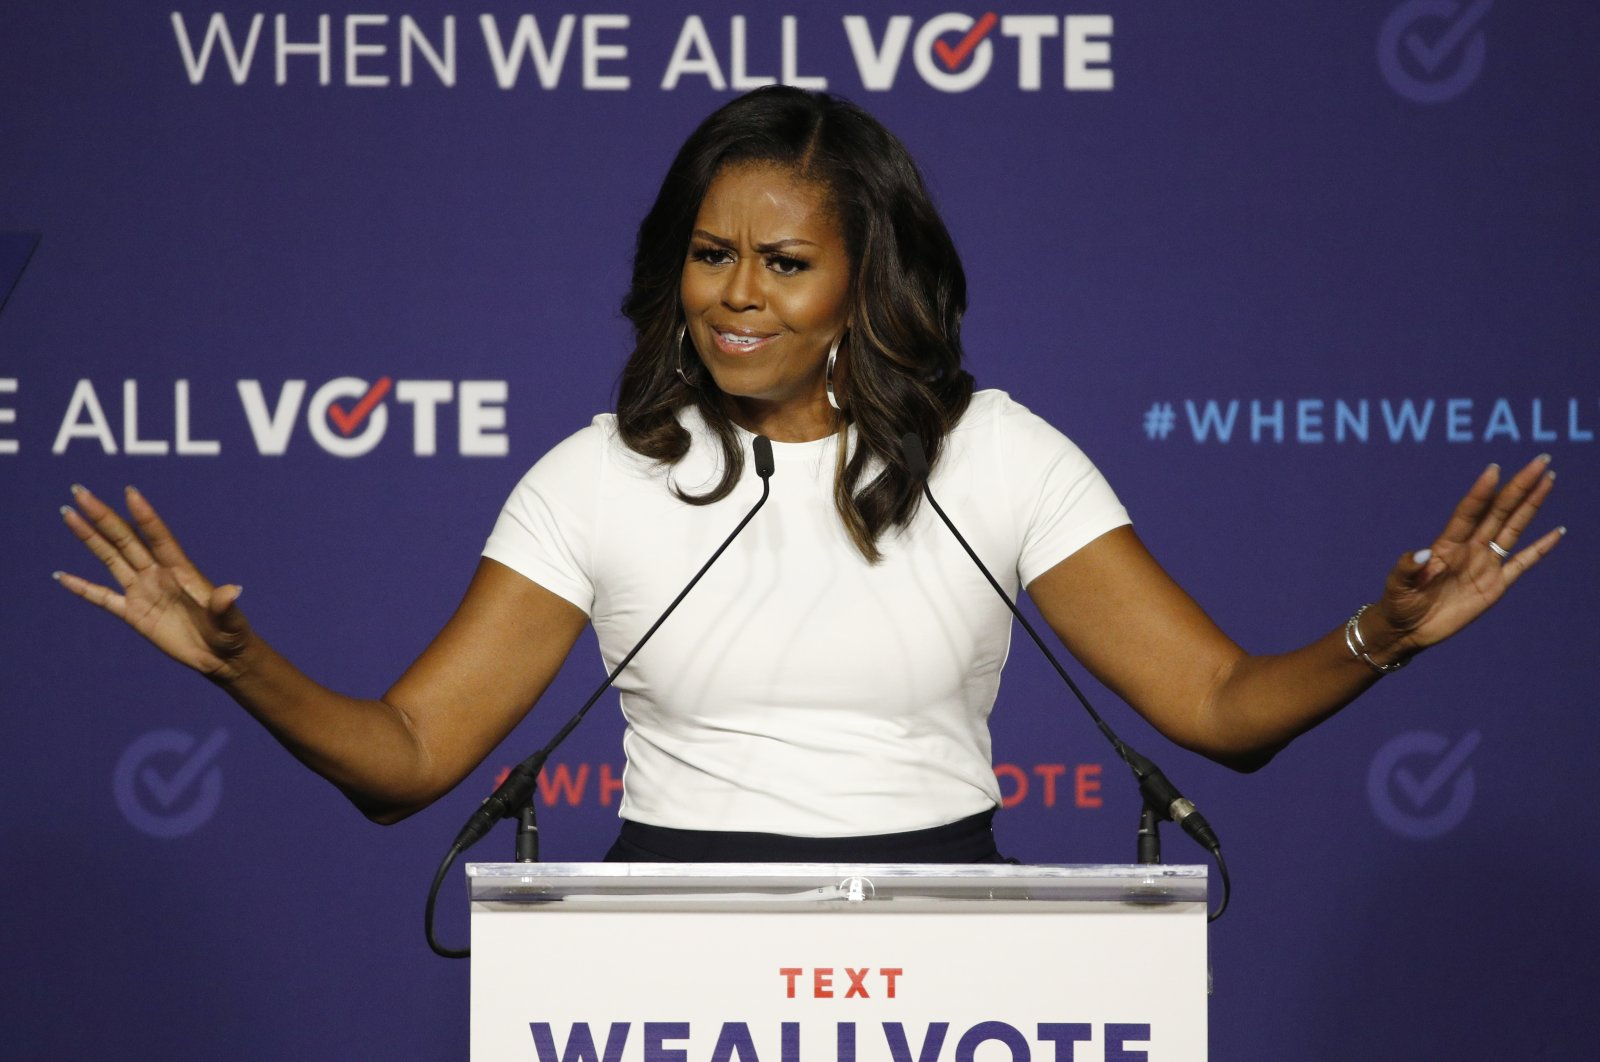 Former first lady Michelle Obama speaks at a rally to encourage voter registration in Las Vegas, Sept. 23, 2018. (AP Photo)